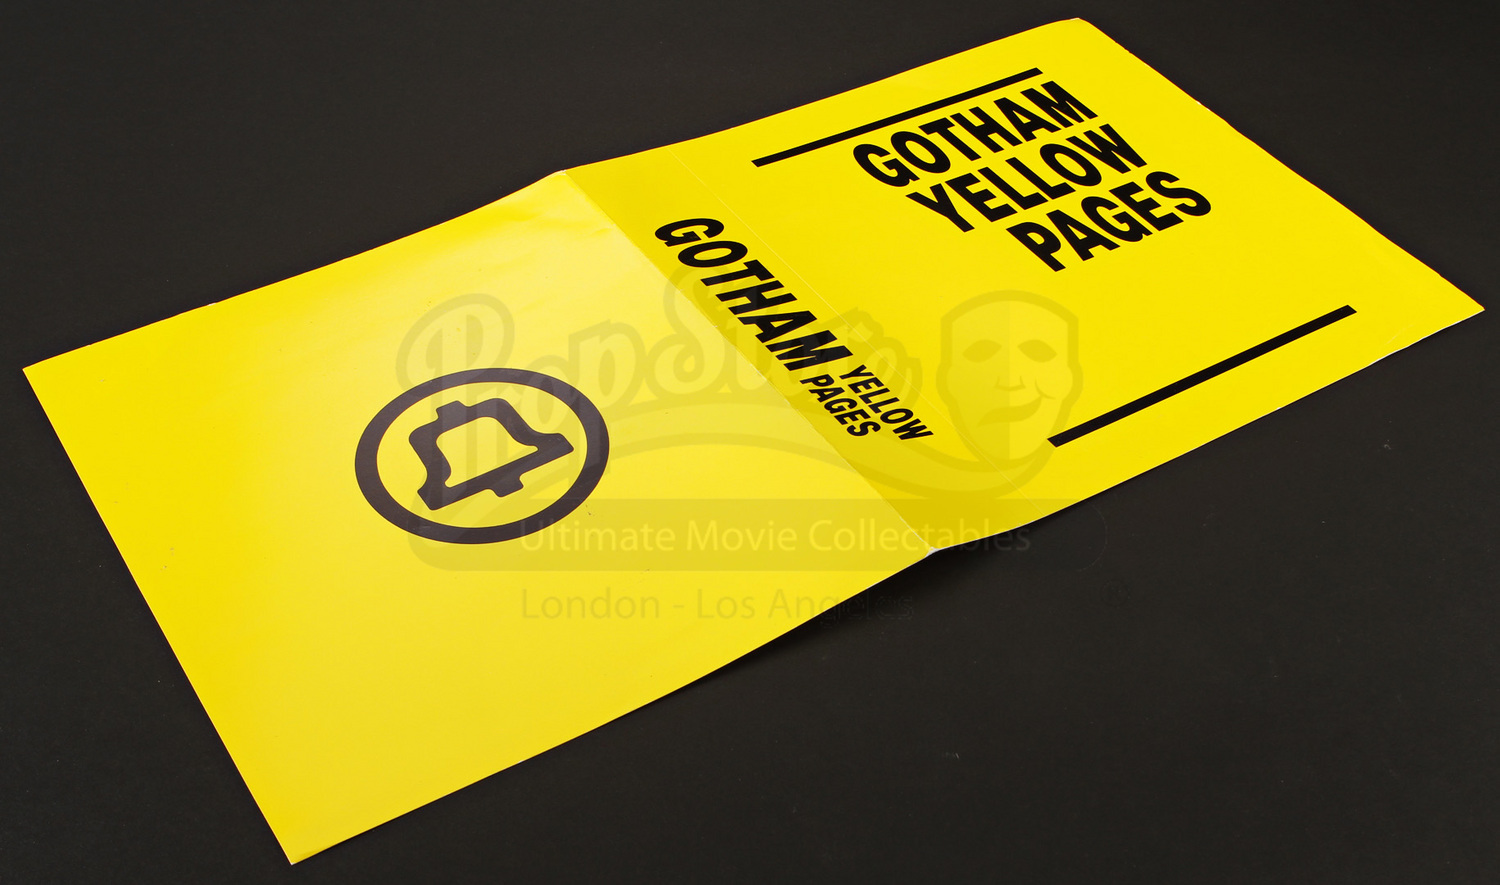 Gotham City Yellow Pages Cover | Prop Store - Ultimate Movie